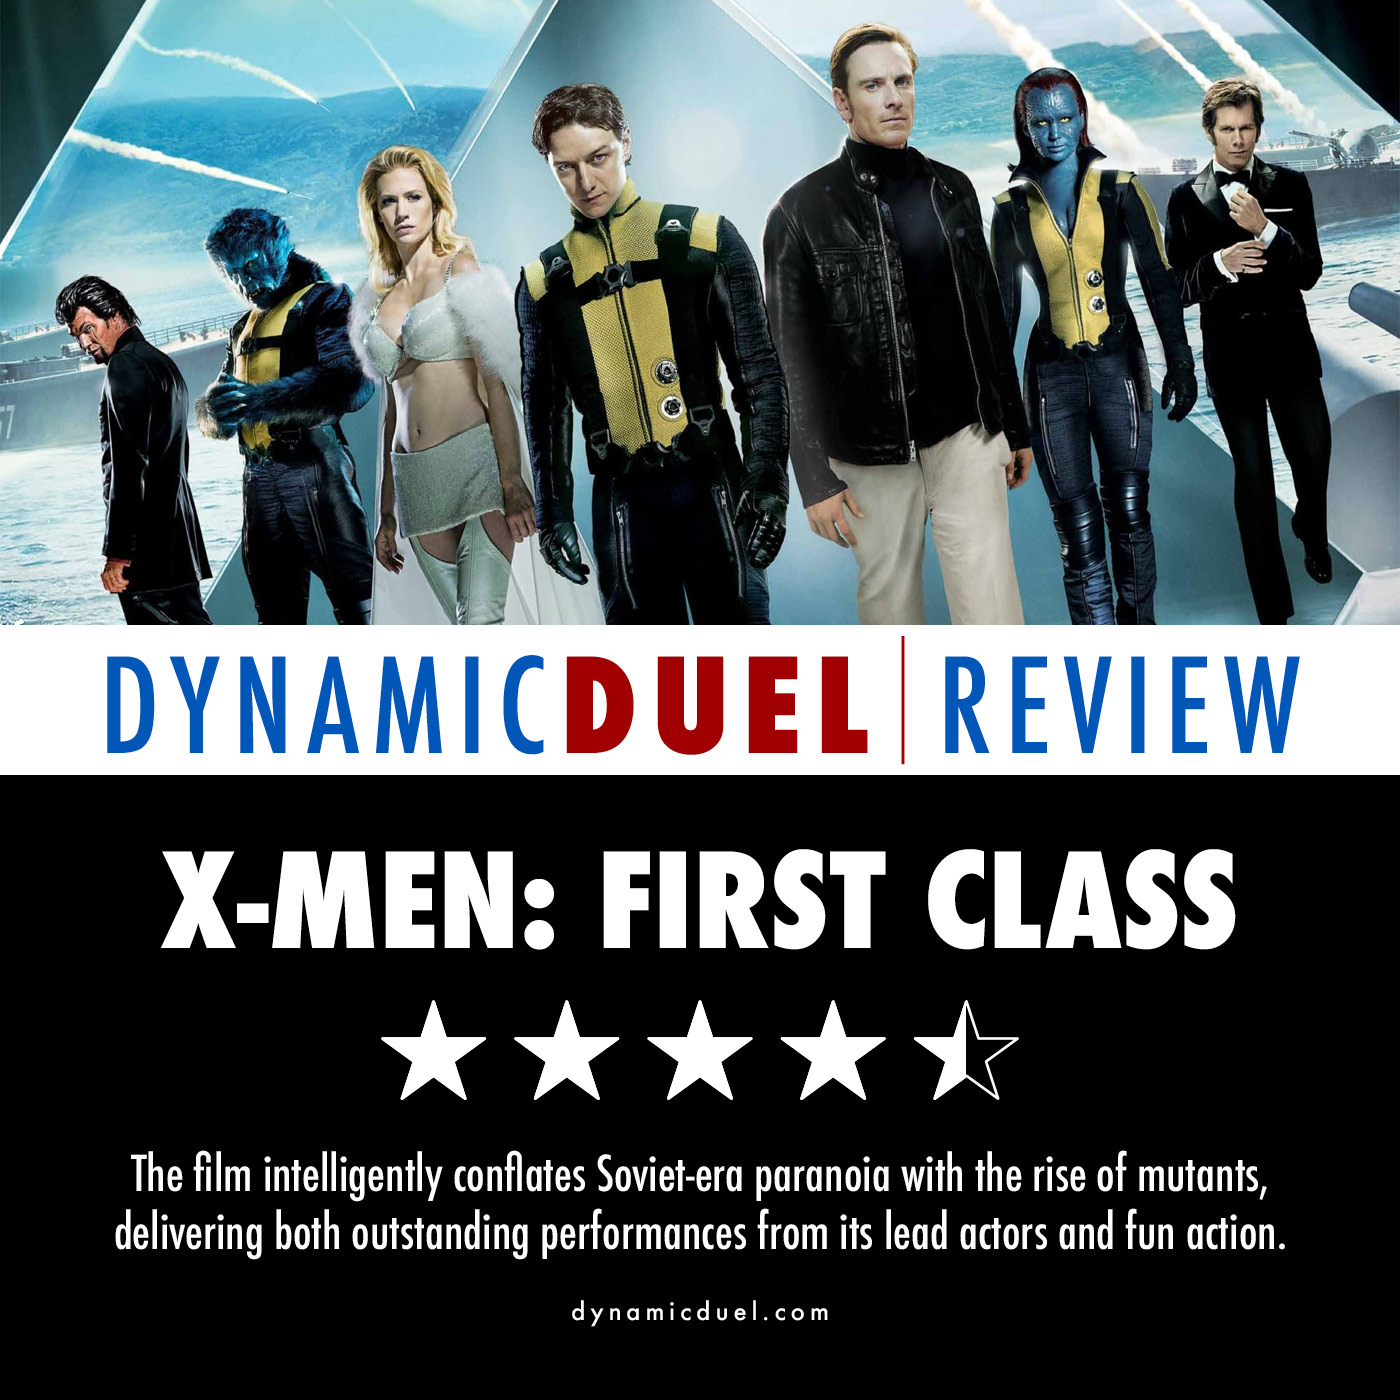 X-Men: First Class Review